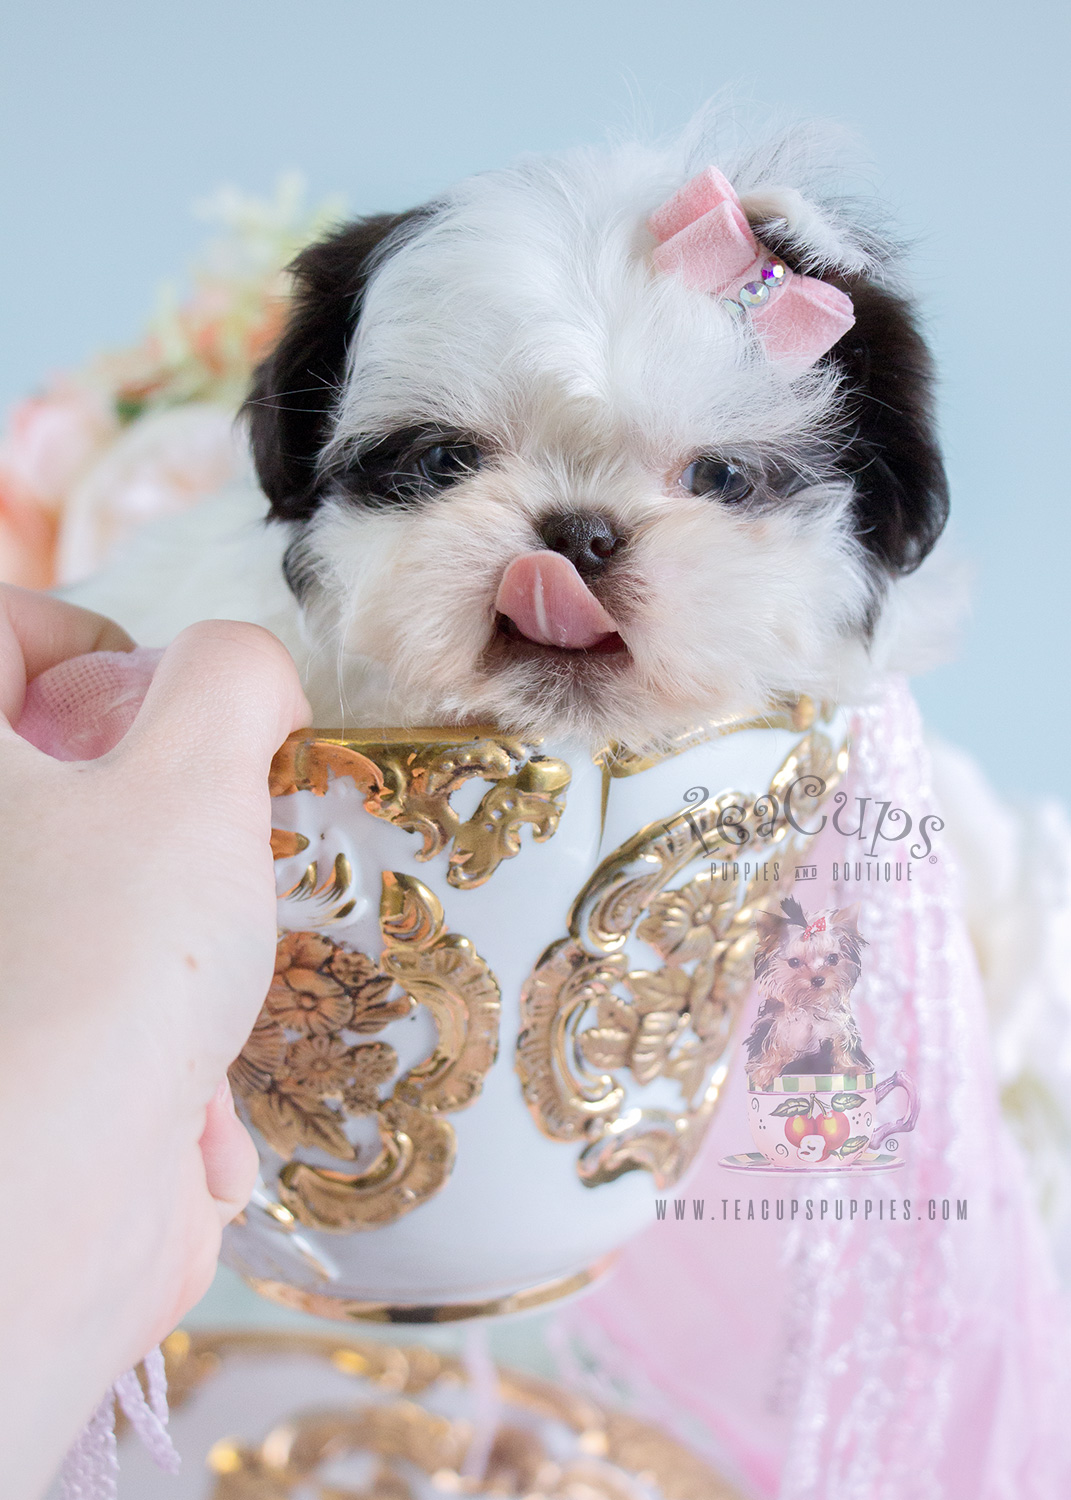 Baby Shih Tzu Puppies For Sale in Davie | Teacups, Puppies & Boutique